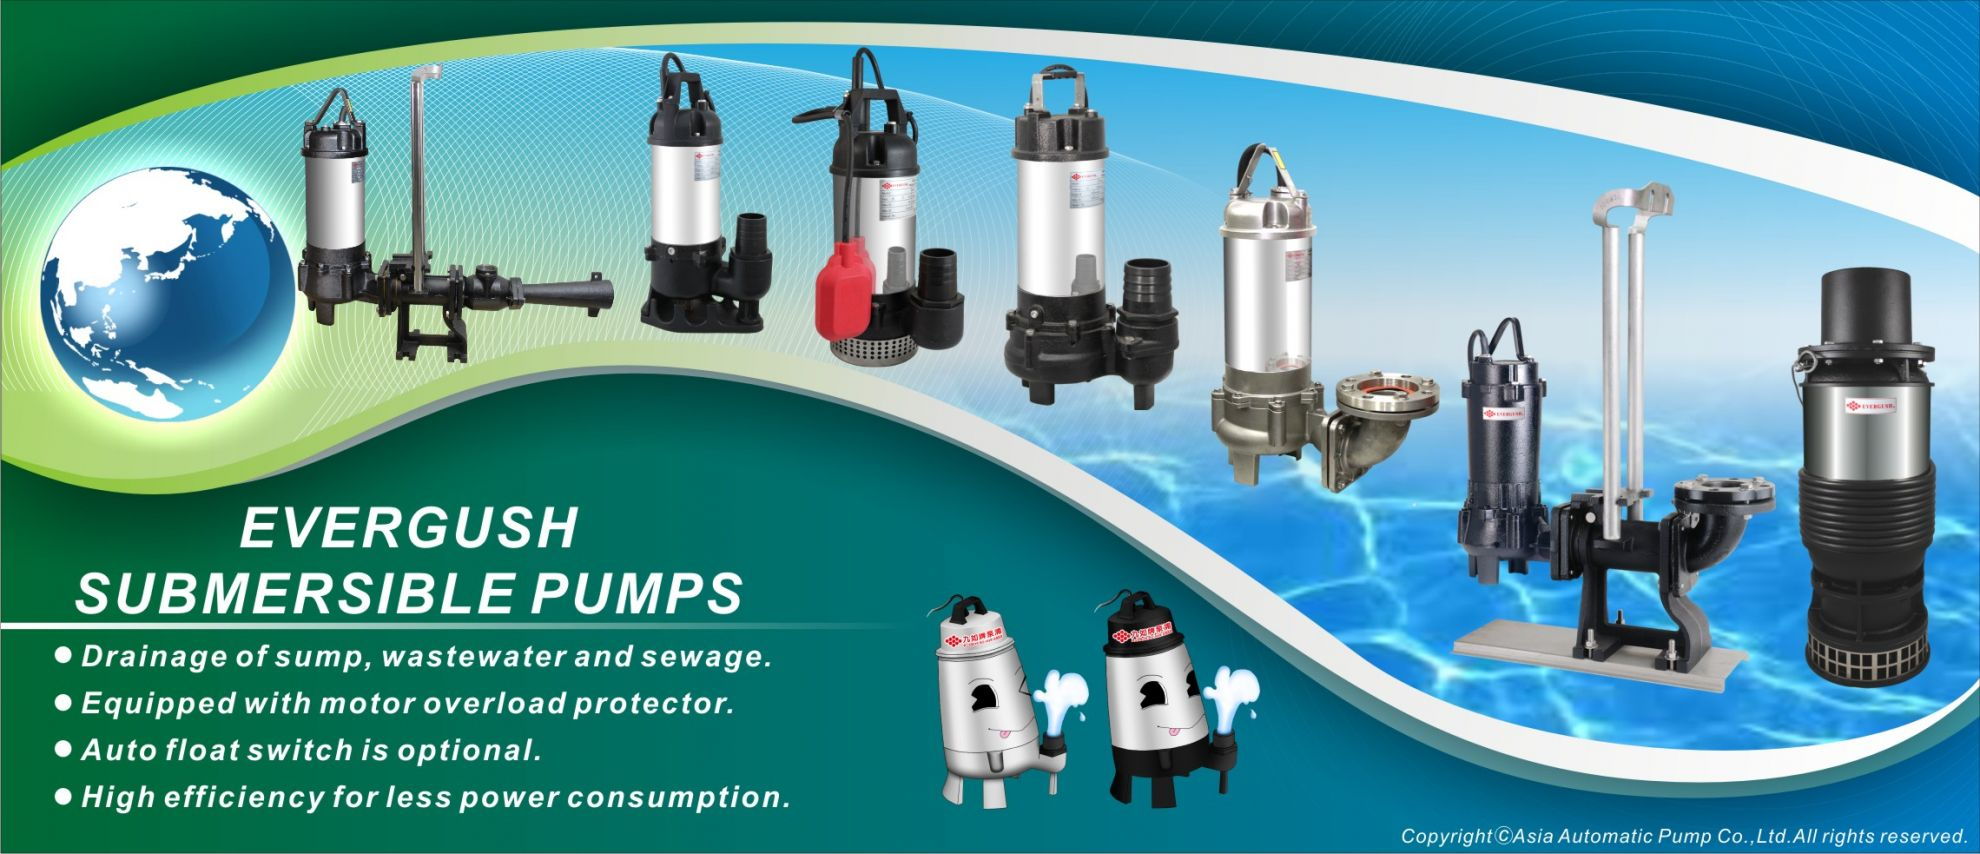 EVERGUSH Submersible pumps